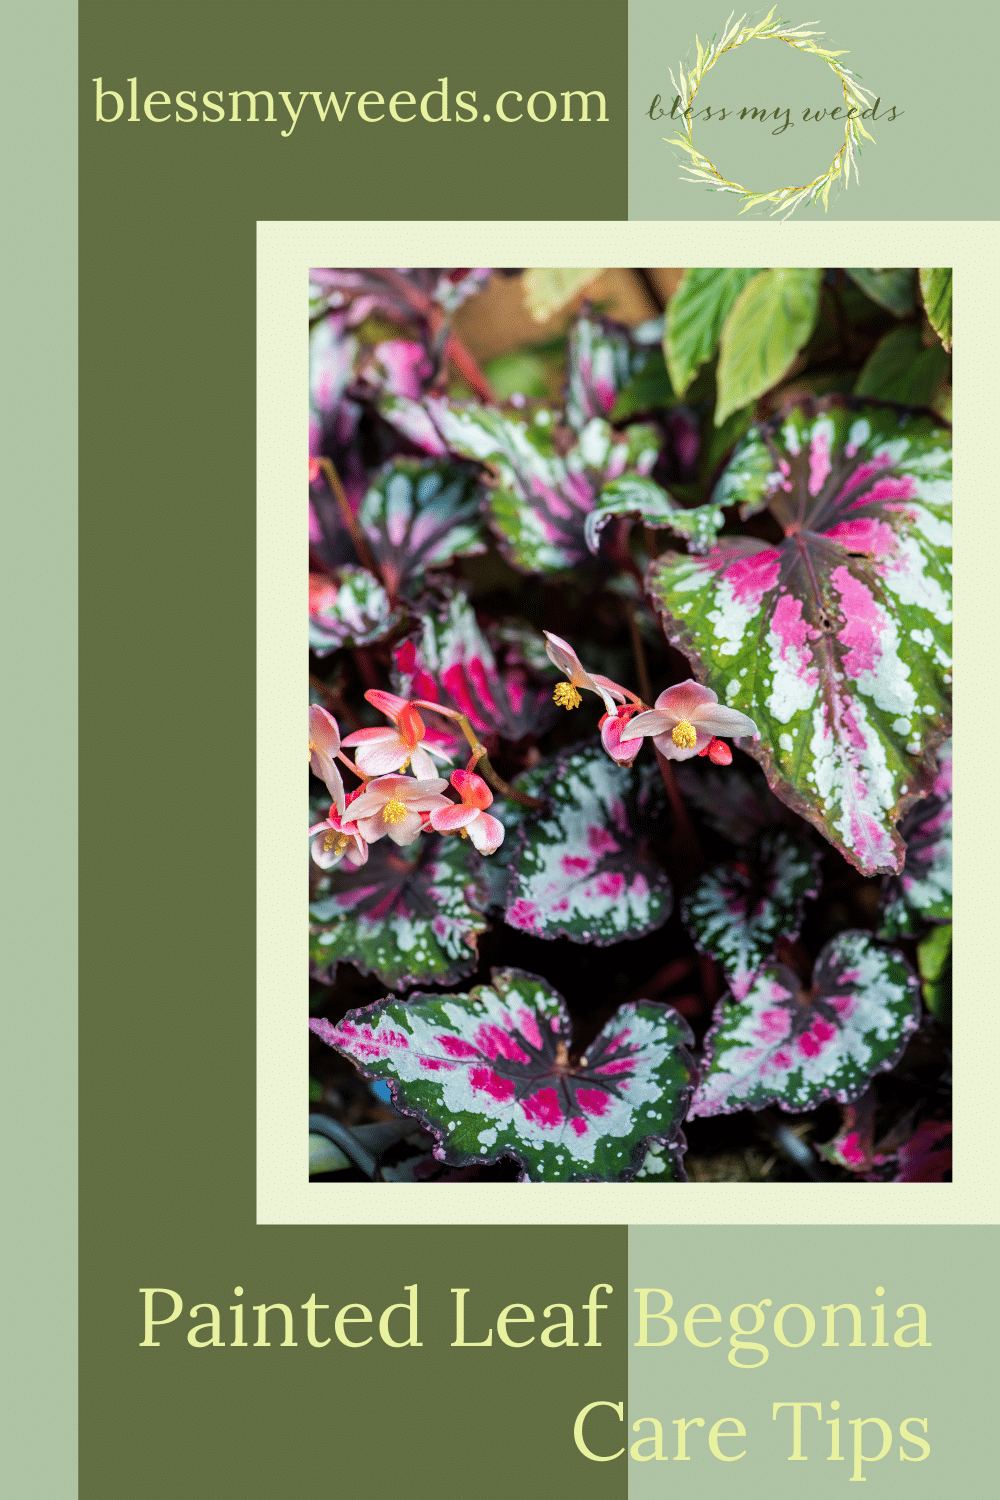 Blessmyweeds.com makes gardening easier than ever with helpful hacks and perfect plant recommendations! Let your hard work fully bloom and master your technique. Find out how you can better care for your painted leaf begonia!